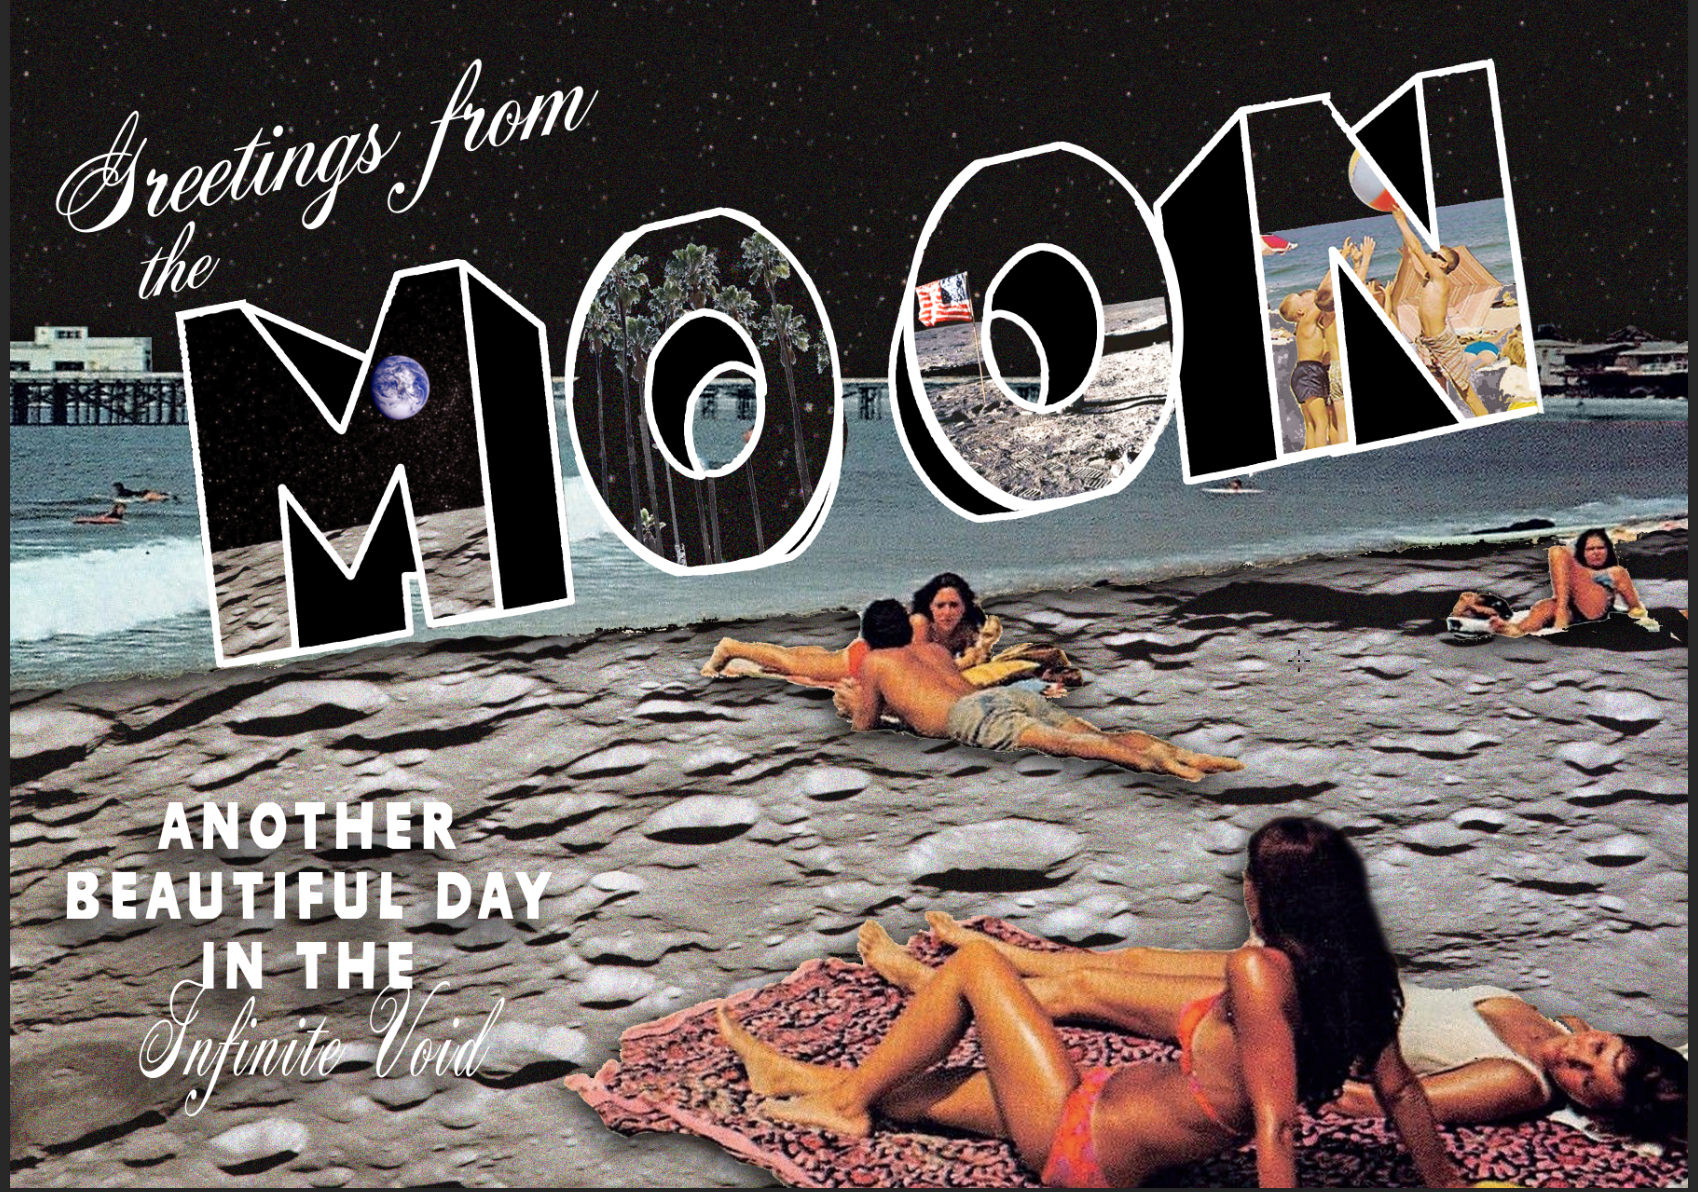 Final- Postcard from the Moon